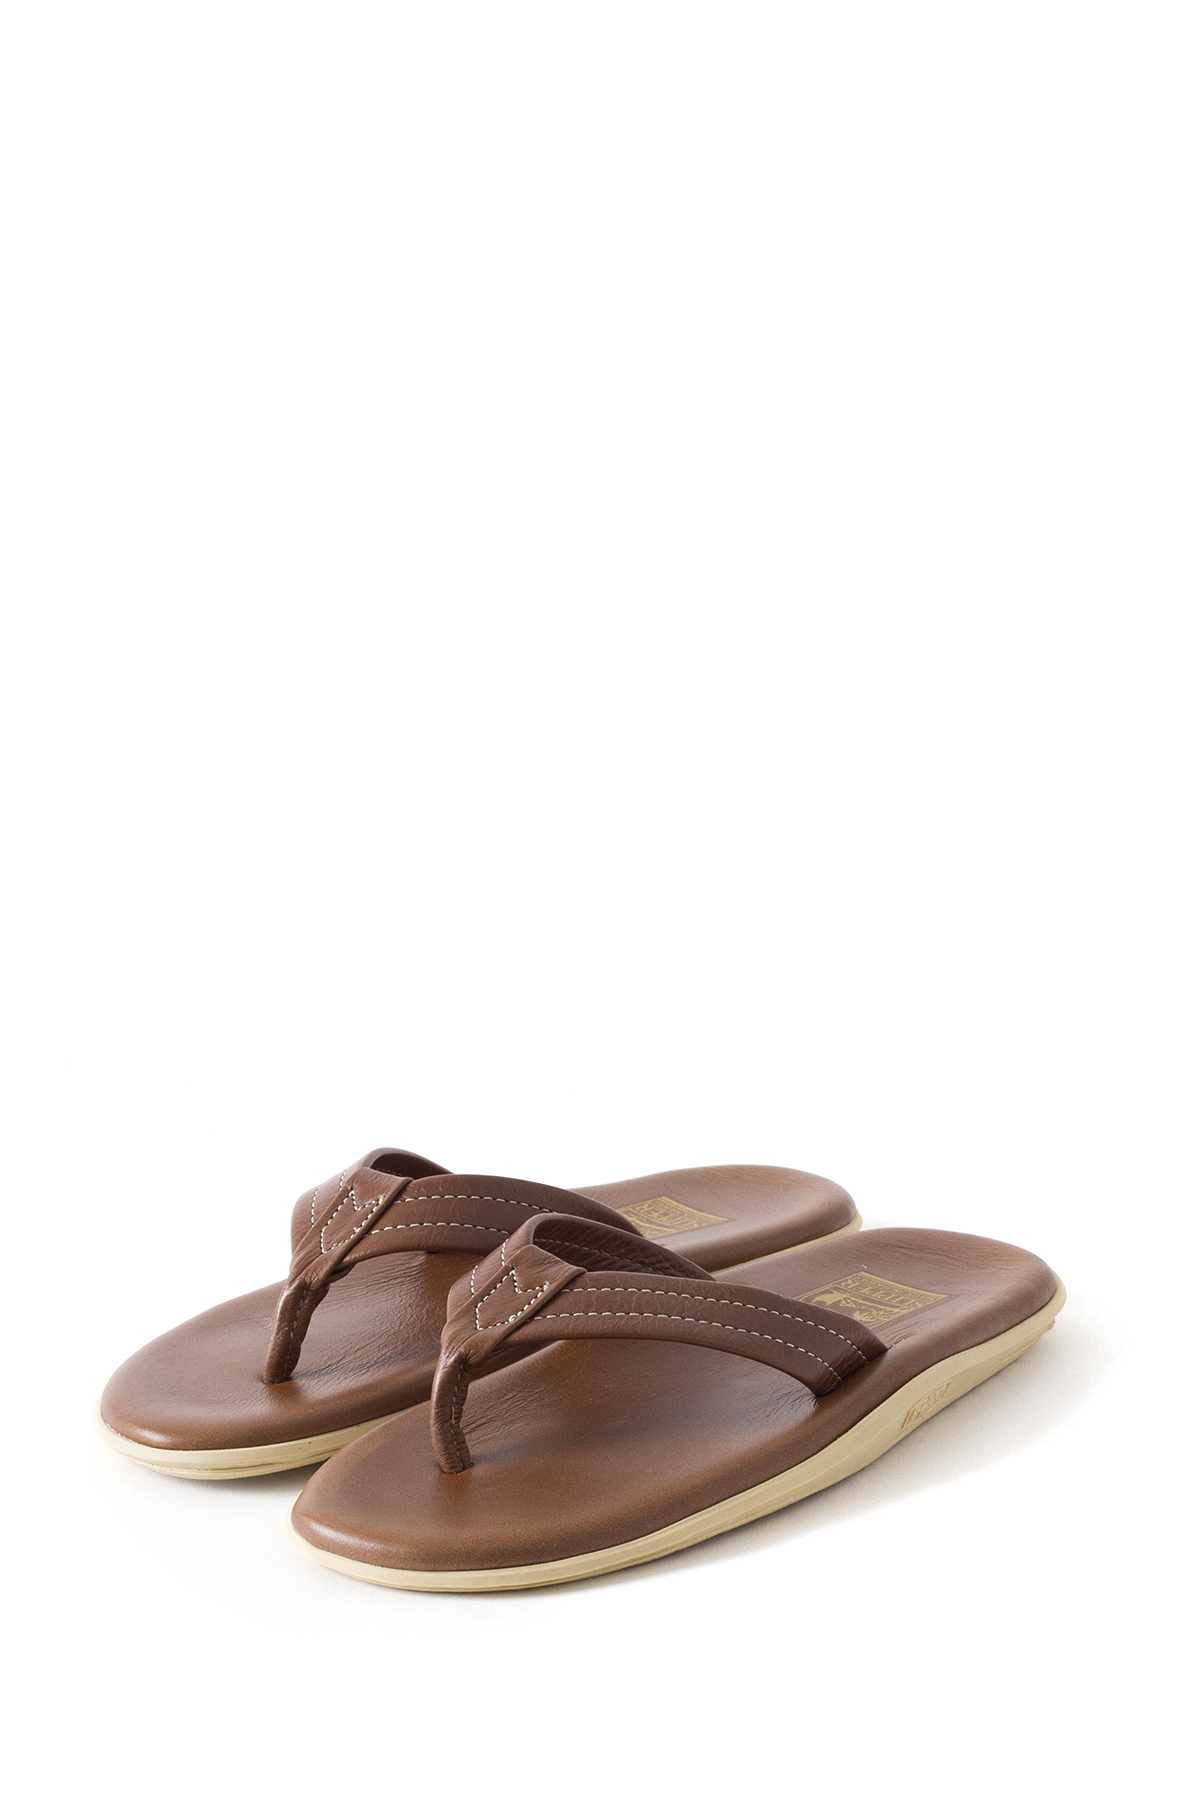 ISLAND SLIPPER : PT202 (Natural / Buff)